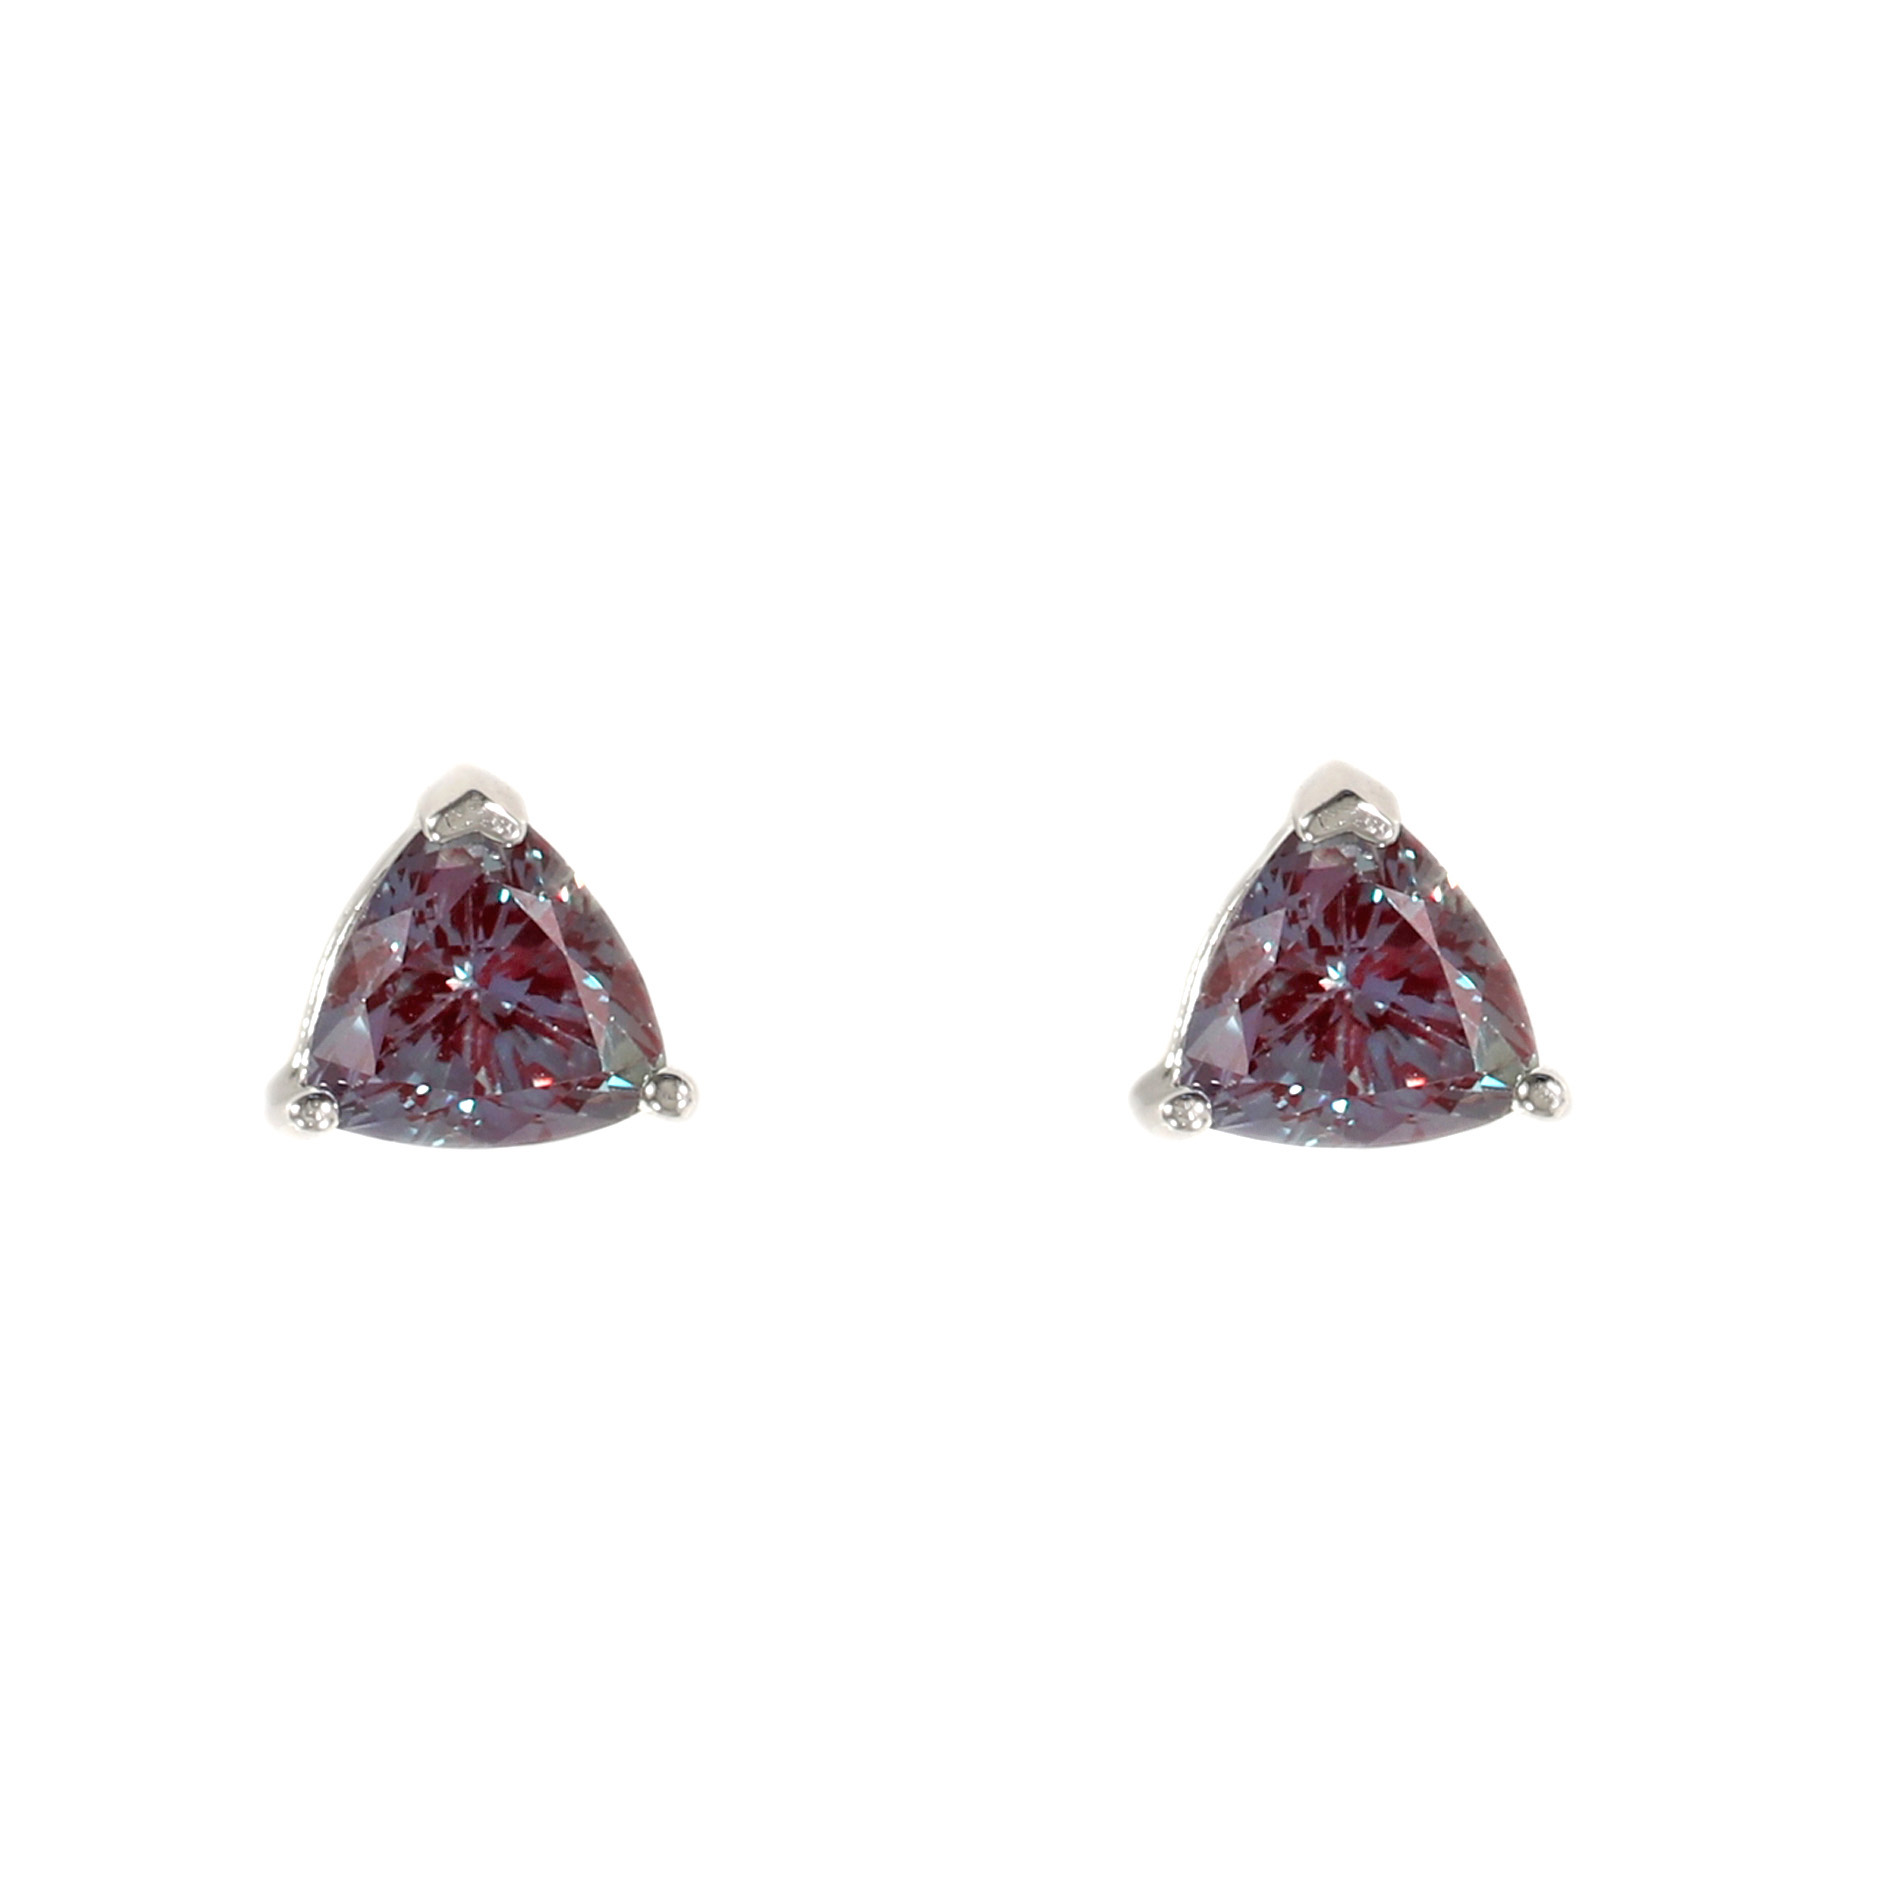 Trillion Alexandrite Stud Earrings